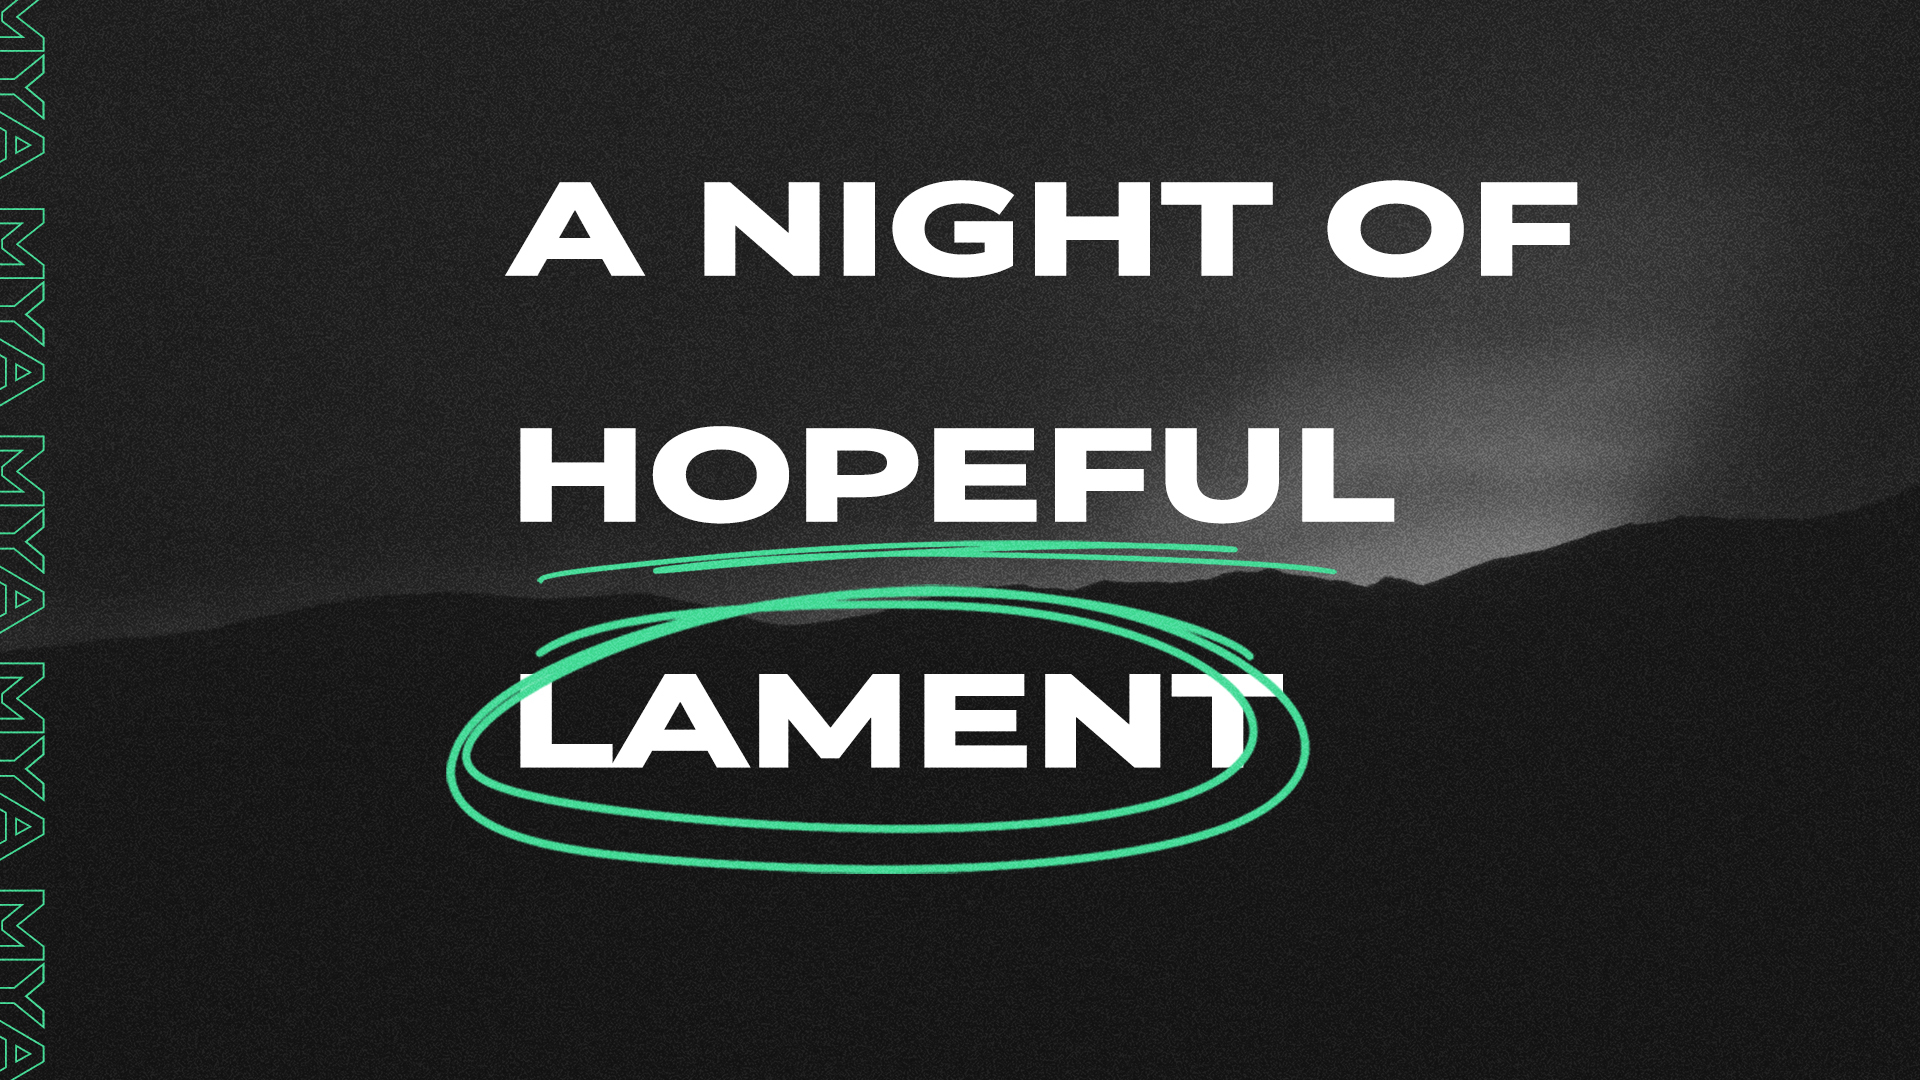 Night of Hopeful Lament